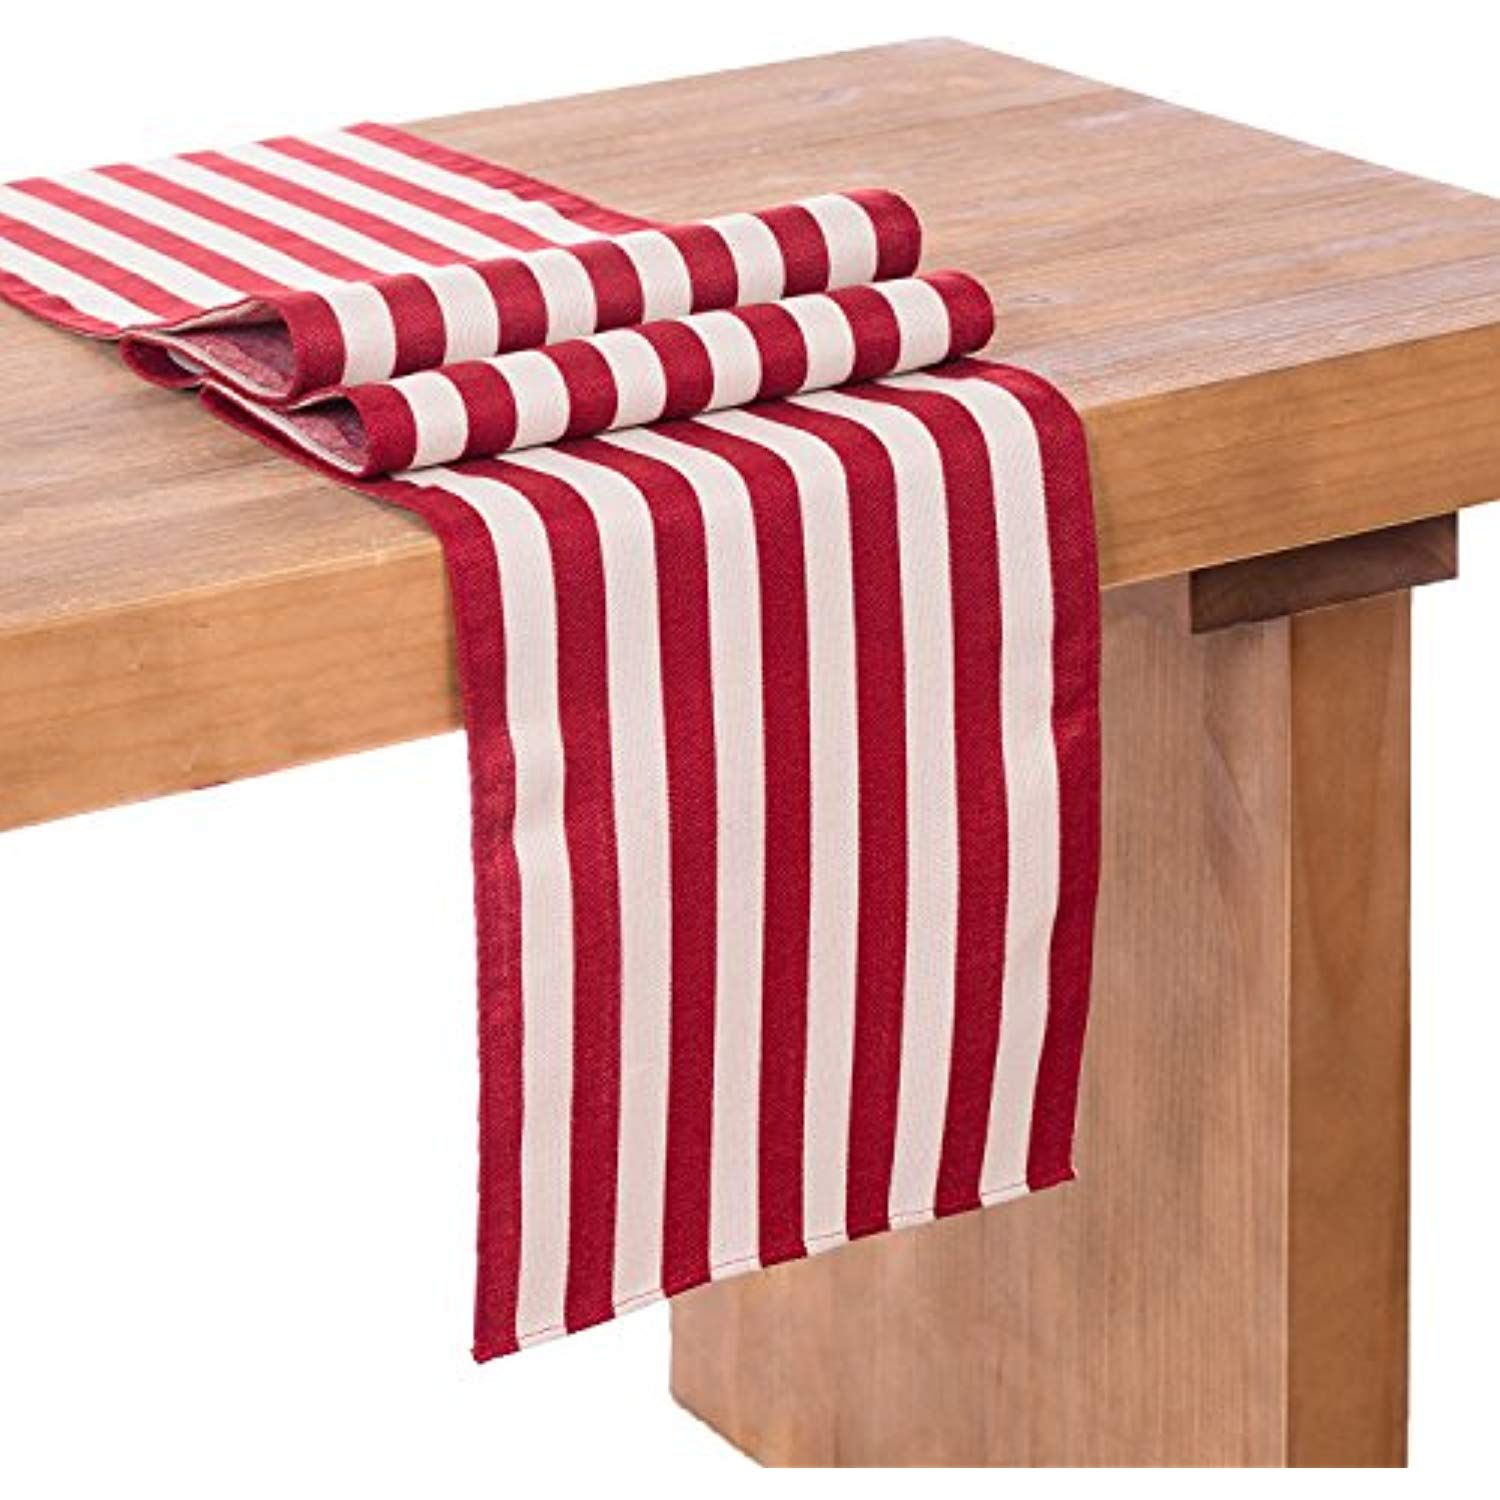 Ling S Moment 12 X 72 Inches Beige And Dark Red Striped Burlap Table Runner For Fall W Kitchen Table Decor Farmhouse Table Runners Linen Table Runner